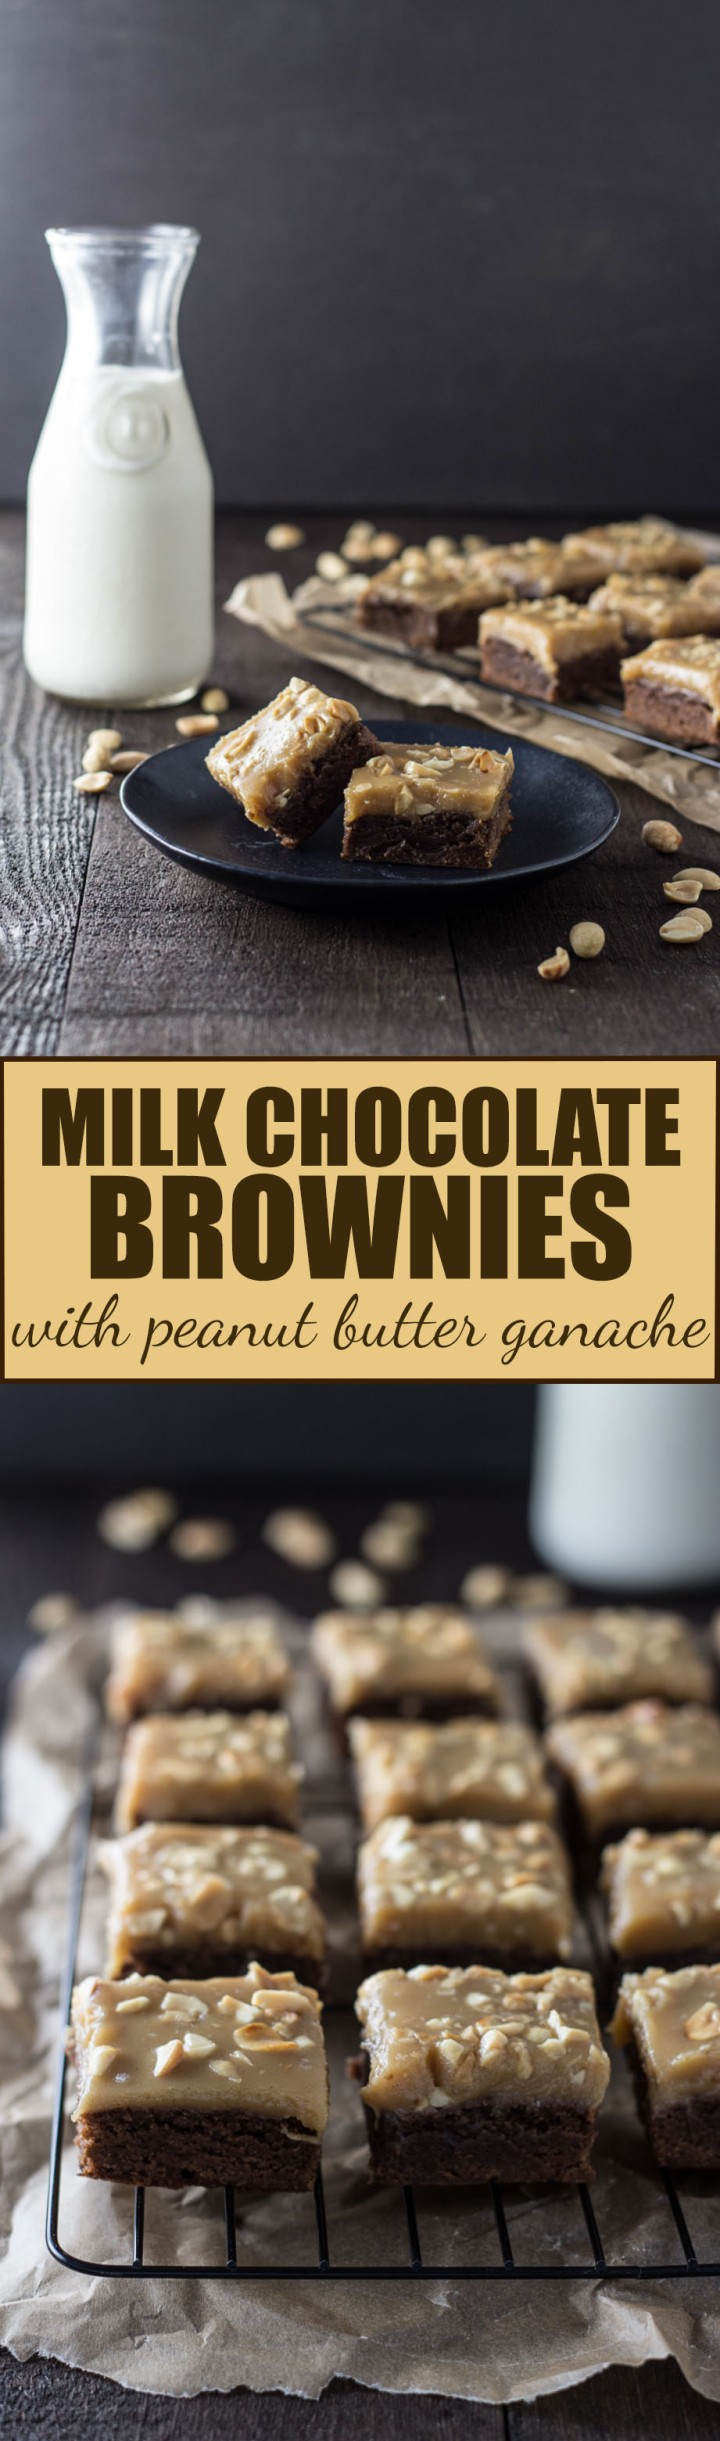 Milk Chocolate Brownies with Peanut Butter Ganache